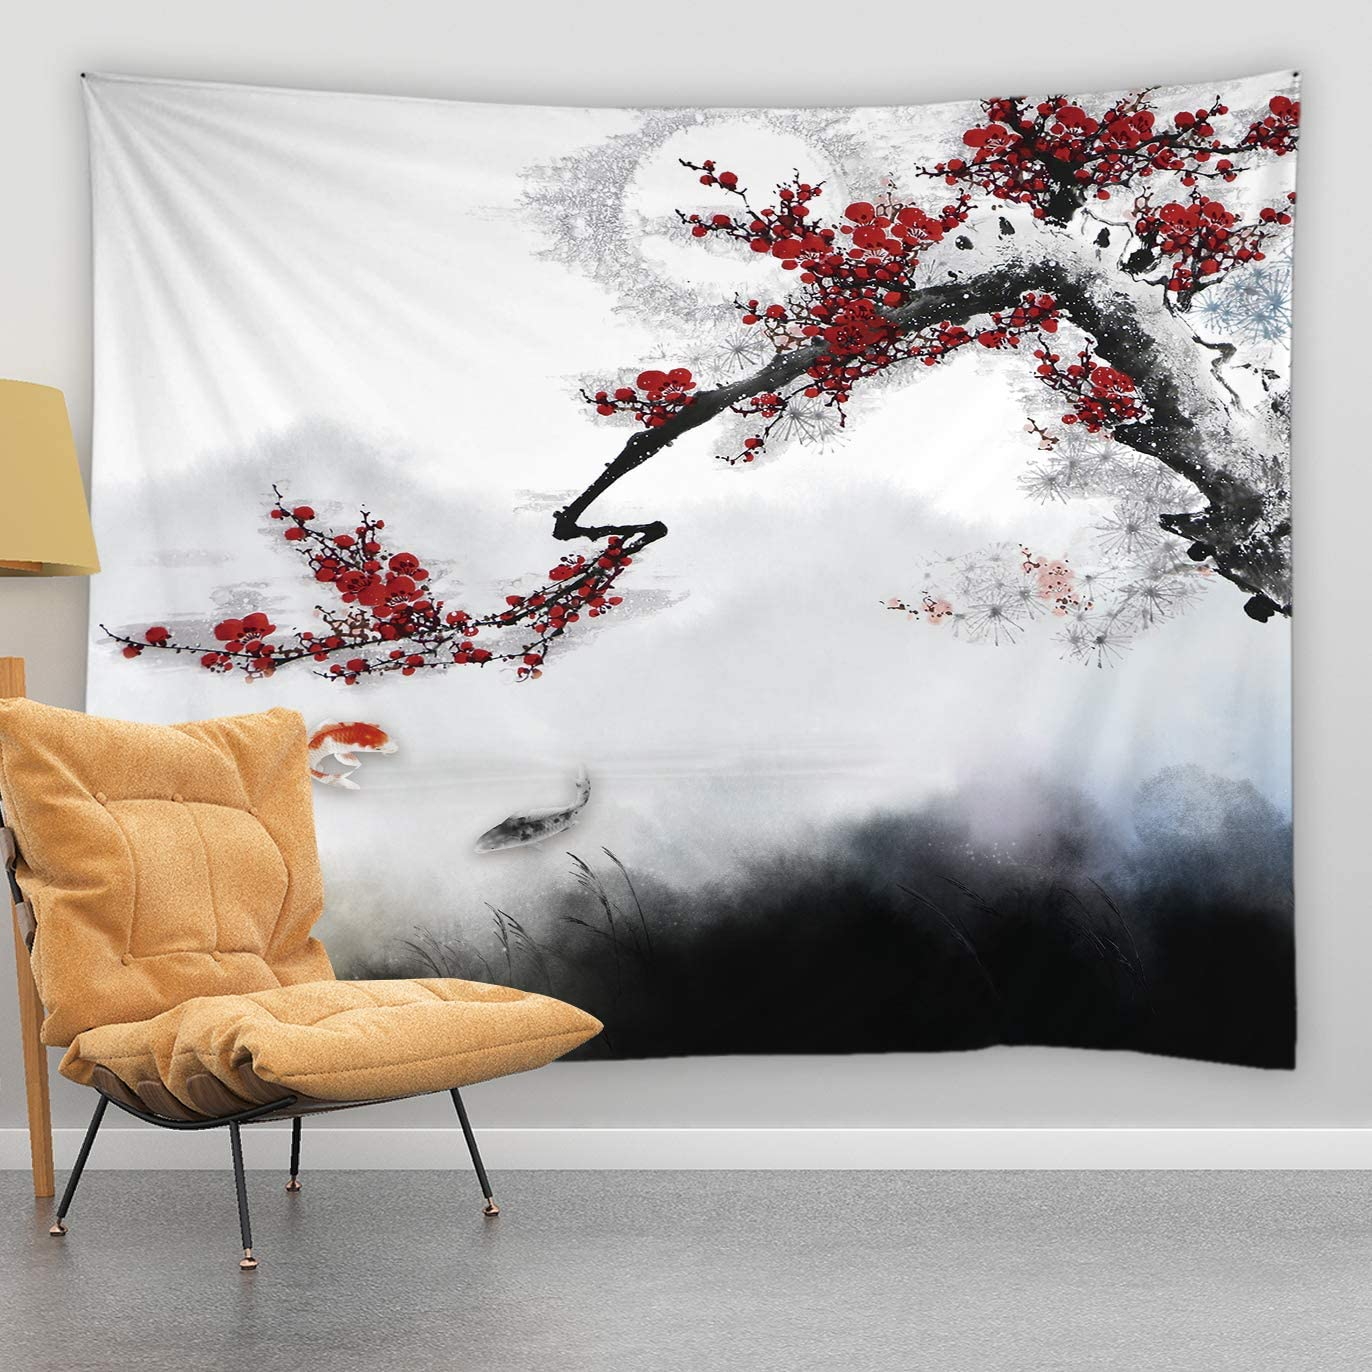 jingjiji Japanese Tapestry Red Plum Blossom Flower Branch Spring Bloom Koi Oriental Traditional Chinese Landscape Ink Painting Asian Zen Garden Wall Hanging Bedroom Living Room Polyester 90 x 71 Inch